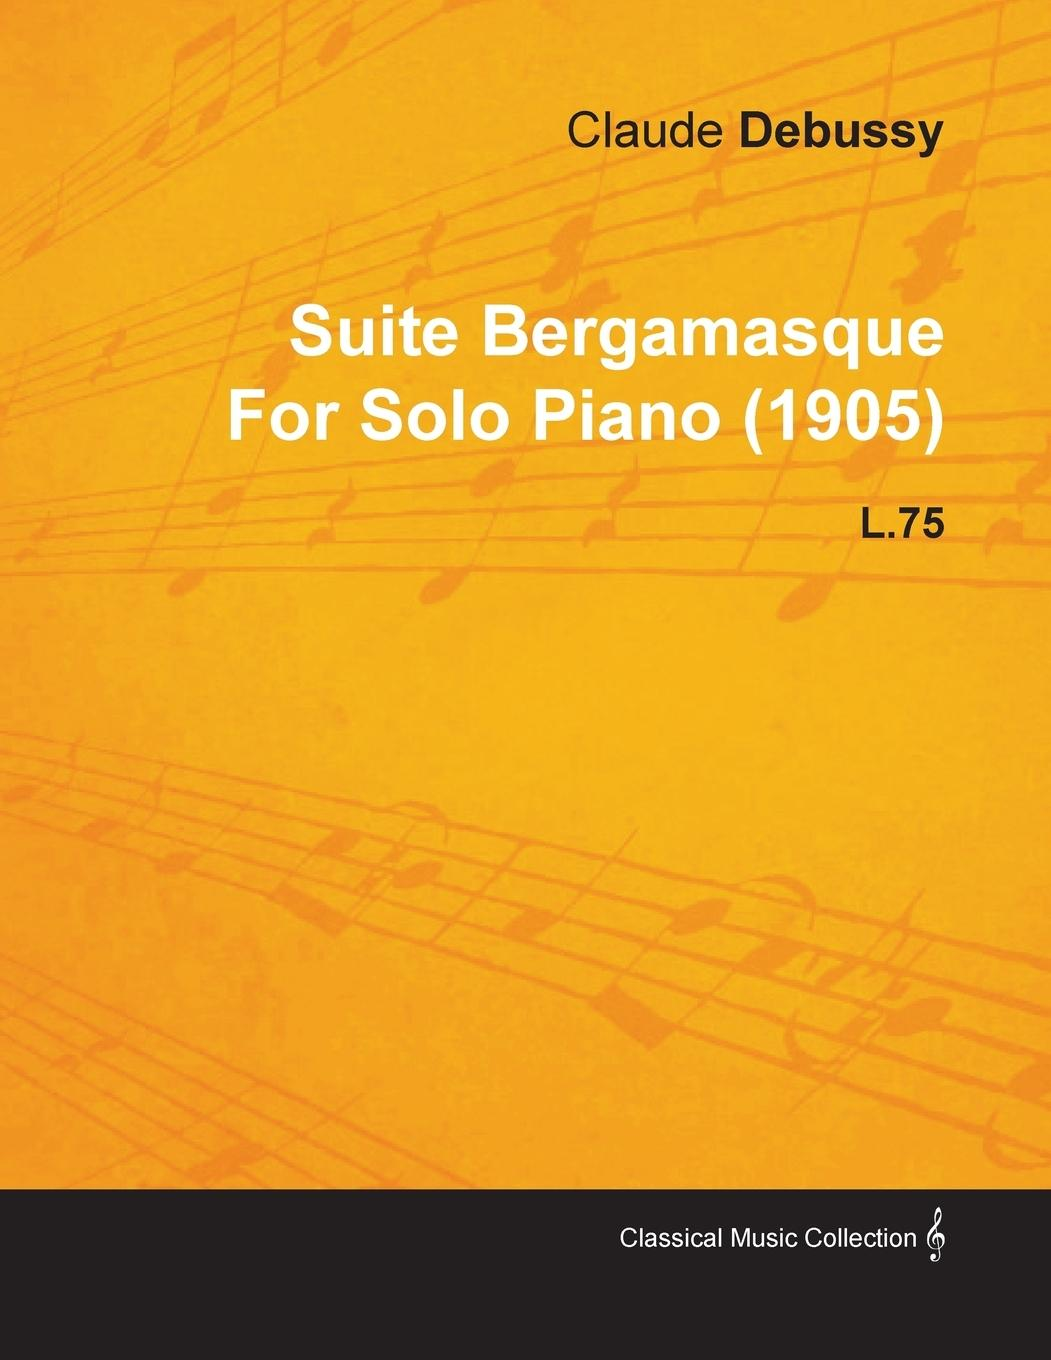 Suite Bergamasque by Claude Debussy for Solo Piano (1905) L.75 - Debussy, Claude